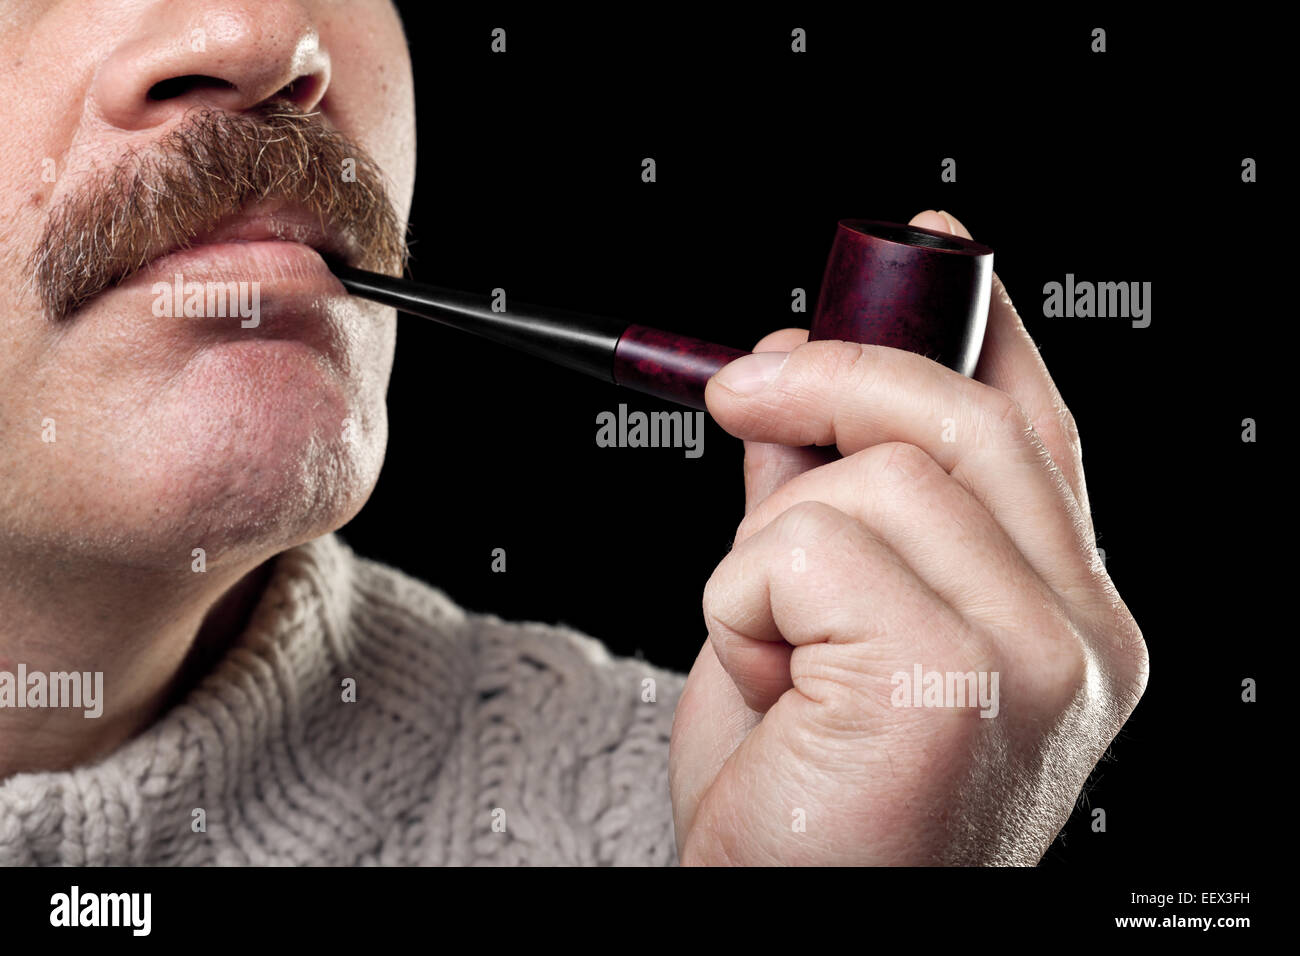 mature caucasian man holding smoking pipe in hand isolated on black background - Stock Image